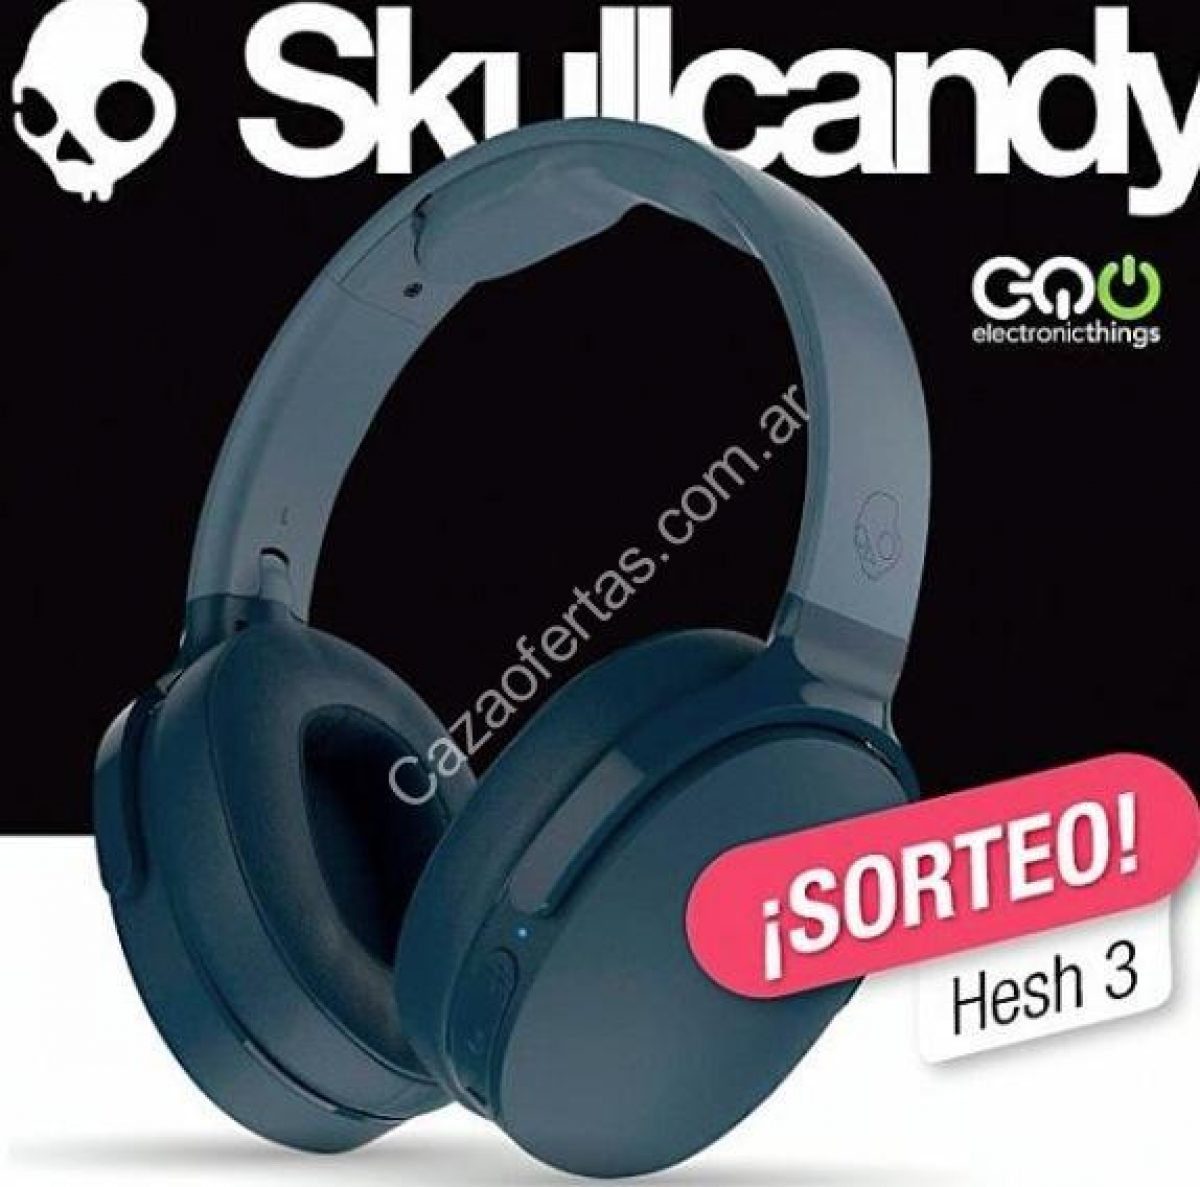 lanzador Alabama solicitud  Sorteo Electronic Things: Ganá un auricular Skullcandy Hesh 3 color azul